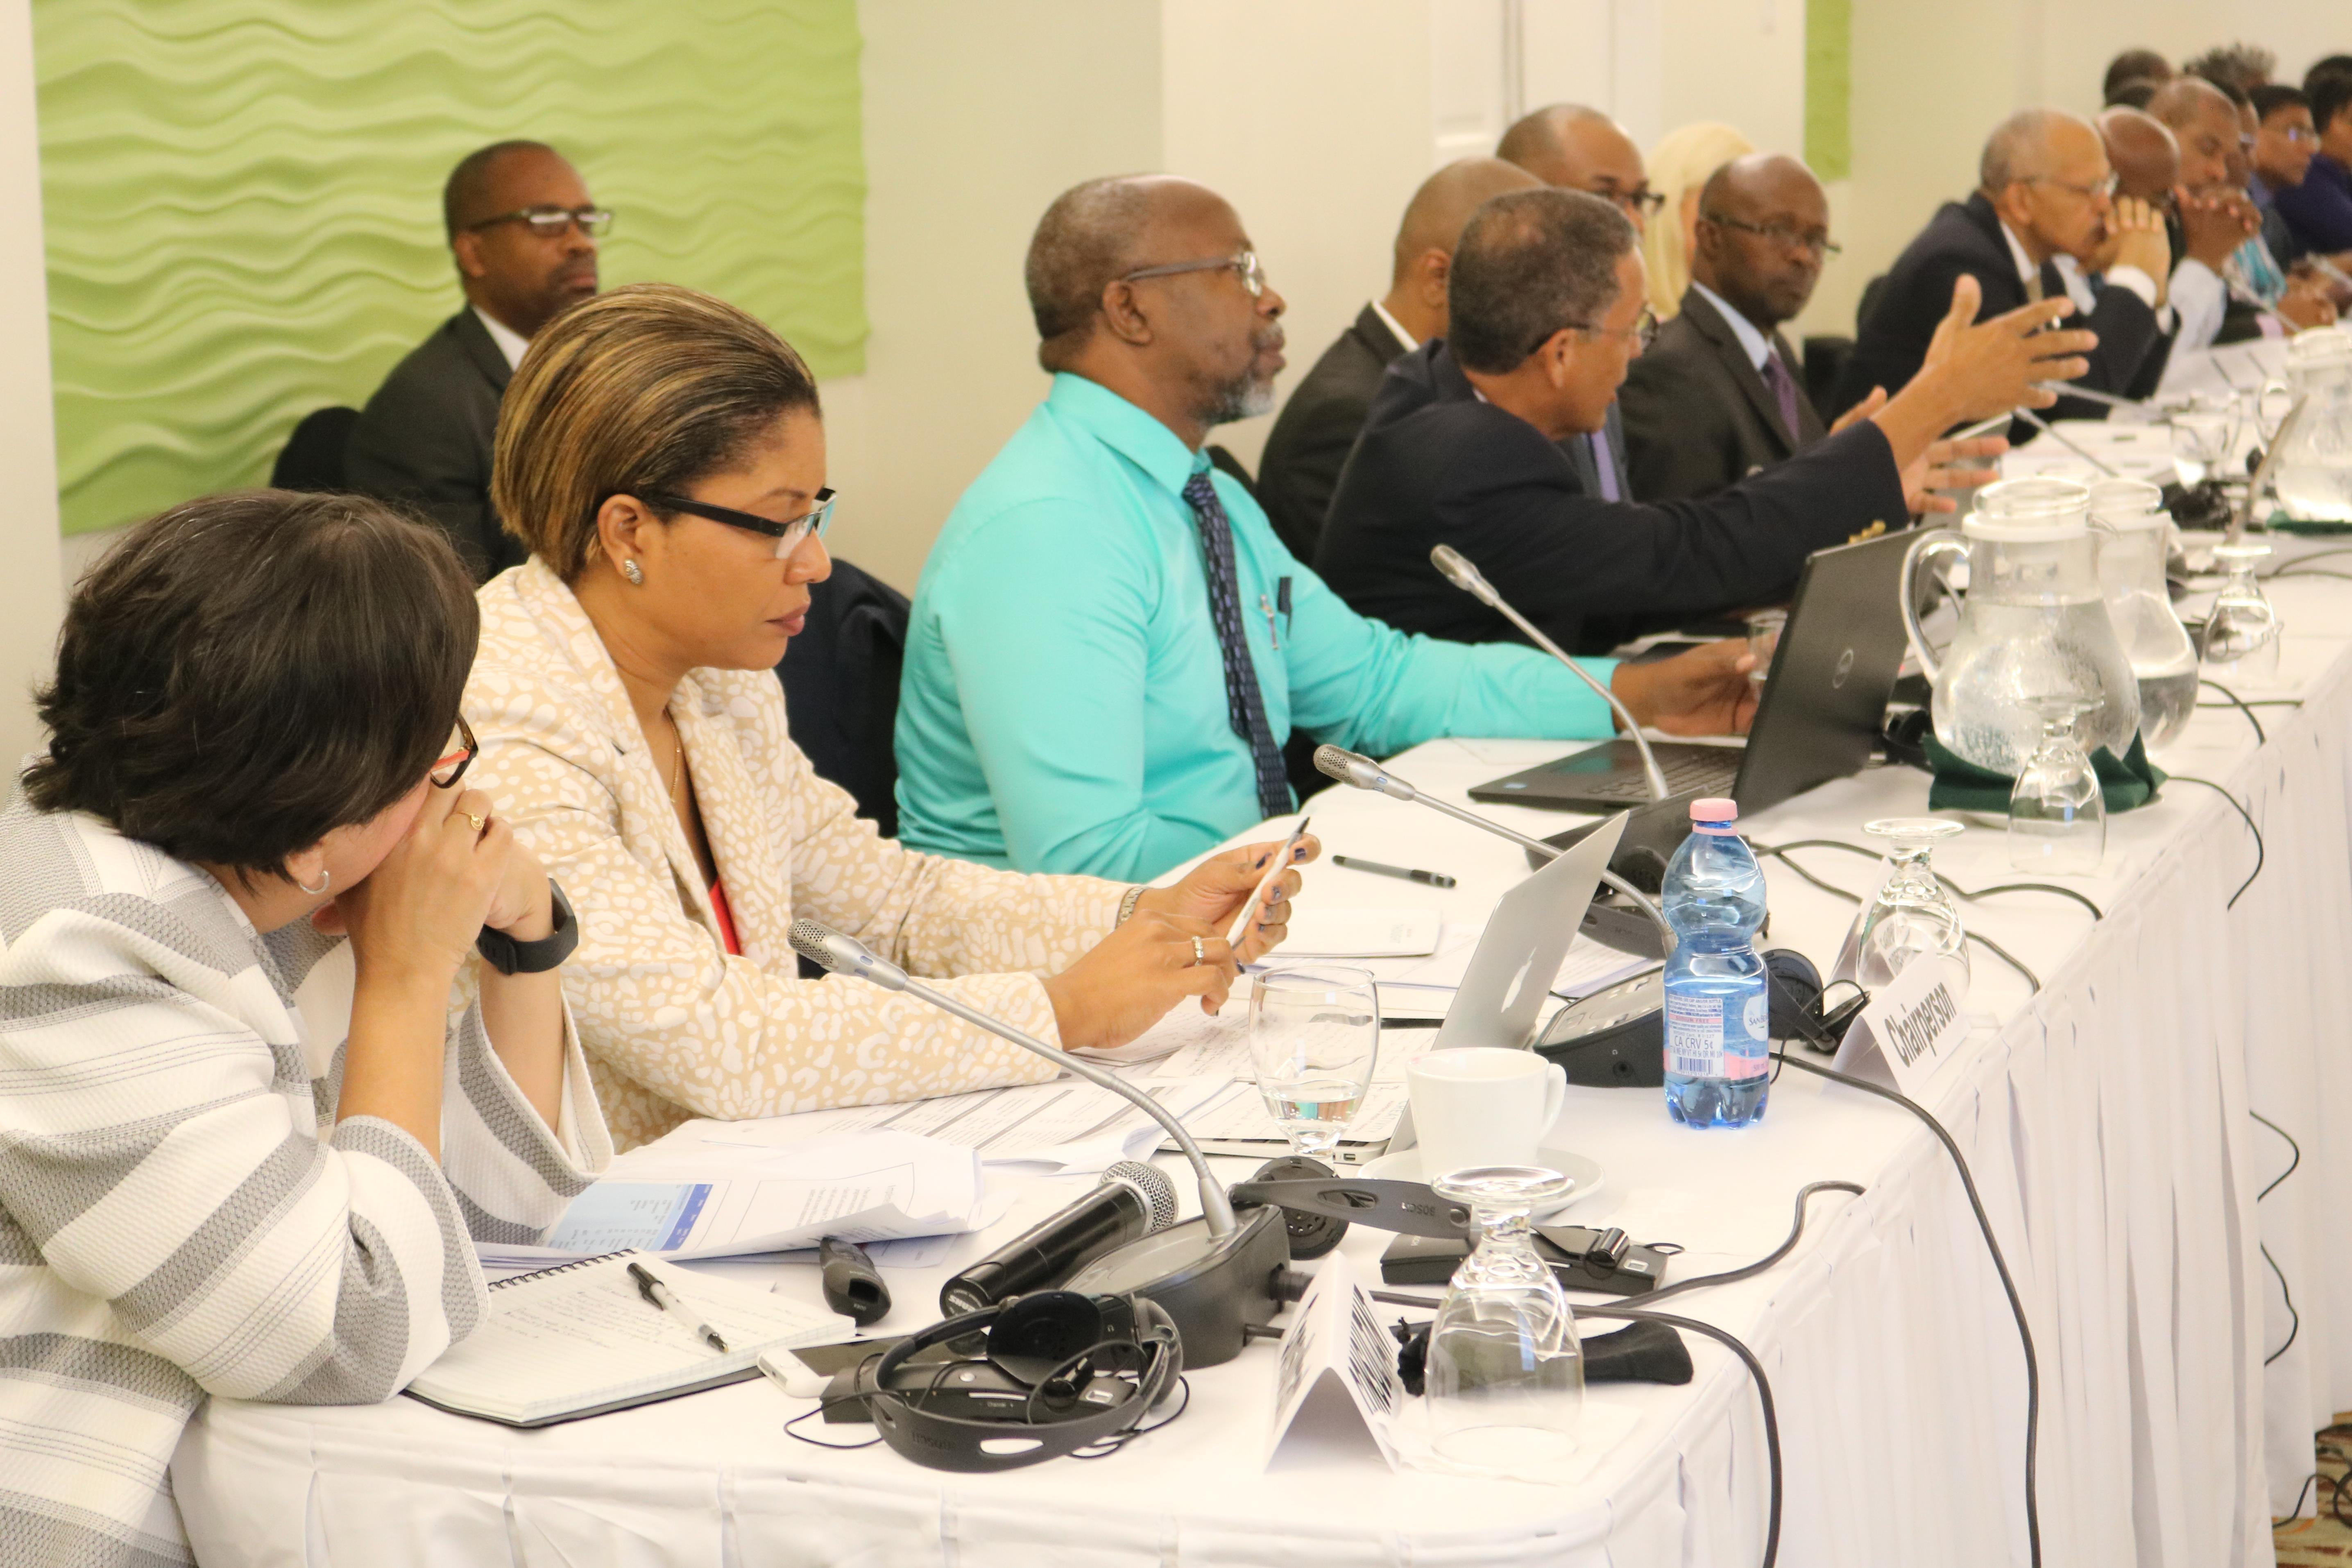 Chairman of the Meeting and EPA Coordinator, Government of Saint Lucia (2nd left) Ms. Lisa Louis Philip, and other participants on the second day of the consultation